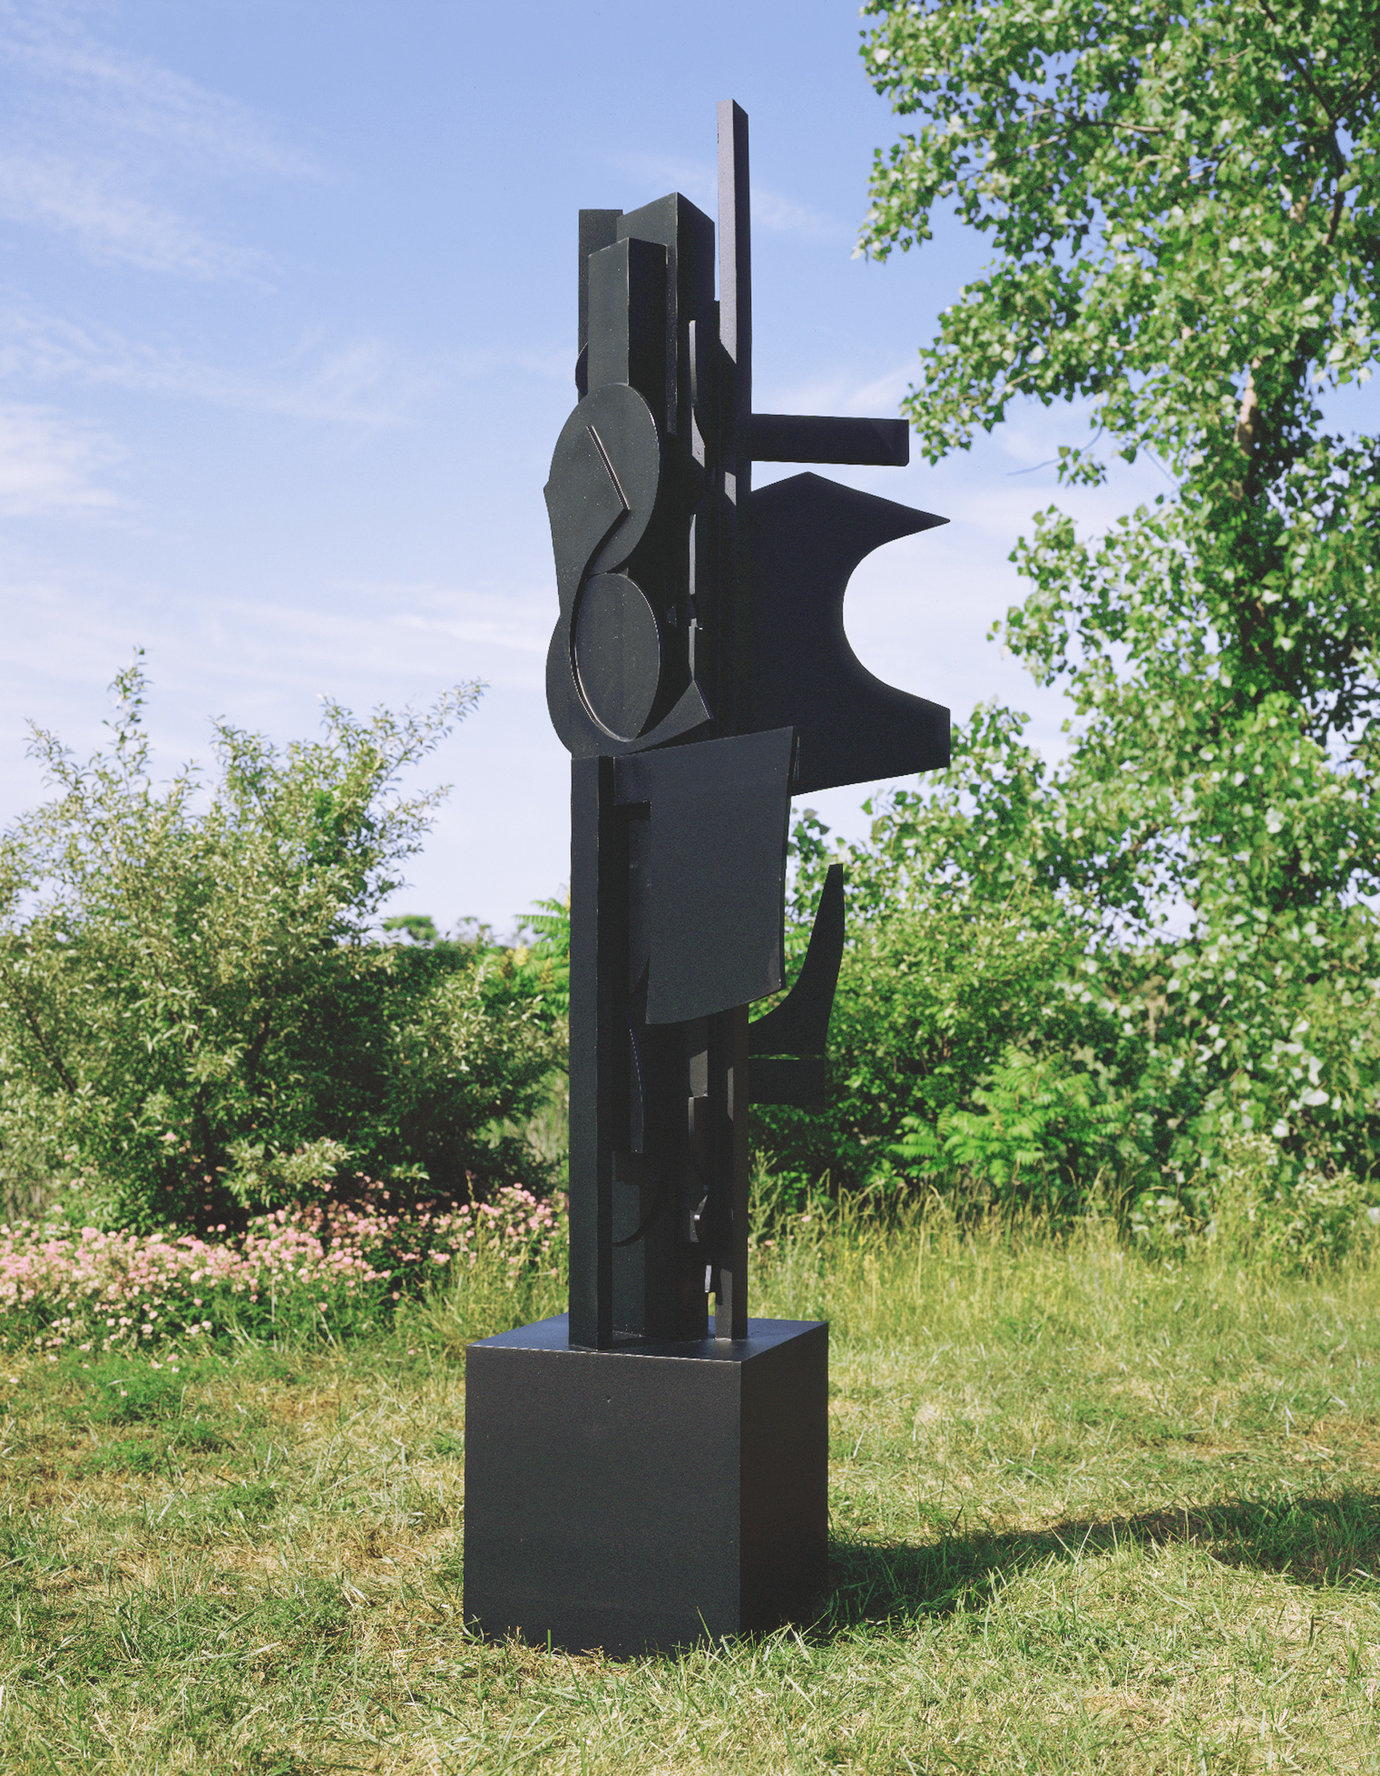 ", 1971. Cor-ten steel painted black, 12' 8"" x 3' 4"" x 3' 4"" (386.1 cm x 101.6 cm x 101.6 cm)."